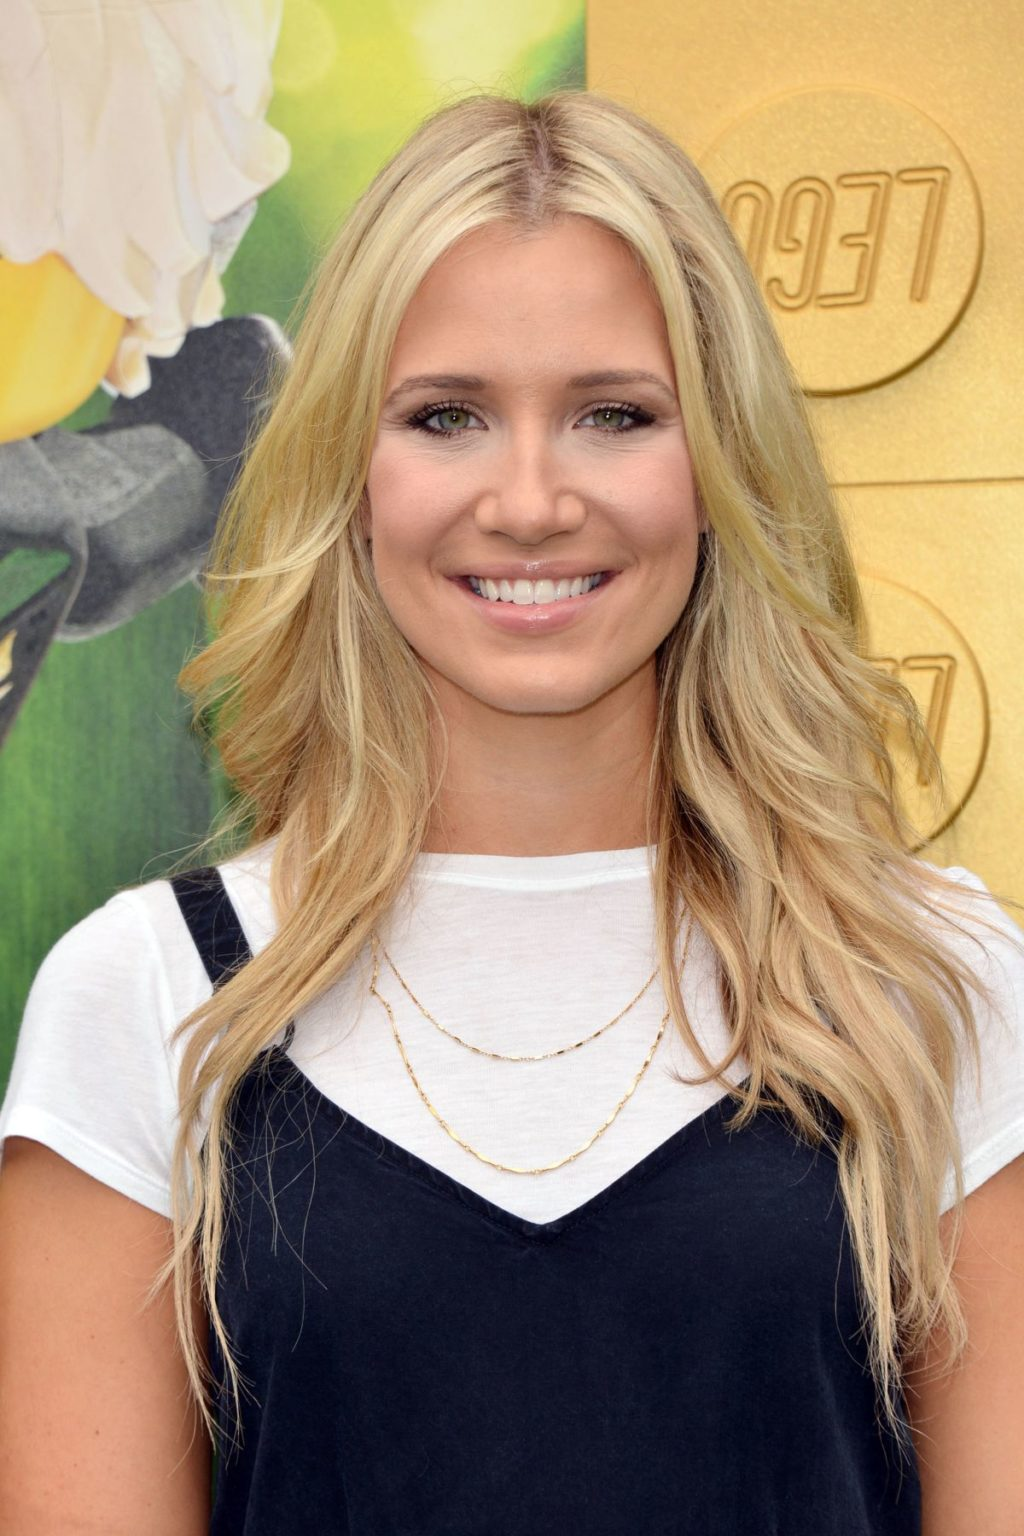 Kristine Leahy Hottest Bikini Pictures Reveal Her Sexy Curvy Body